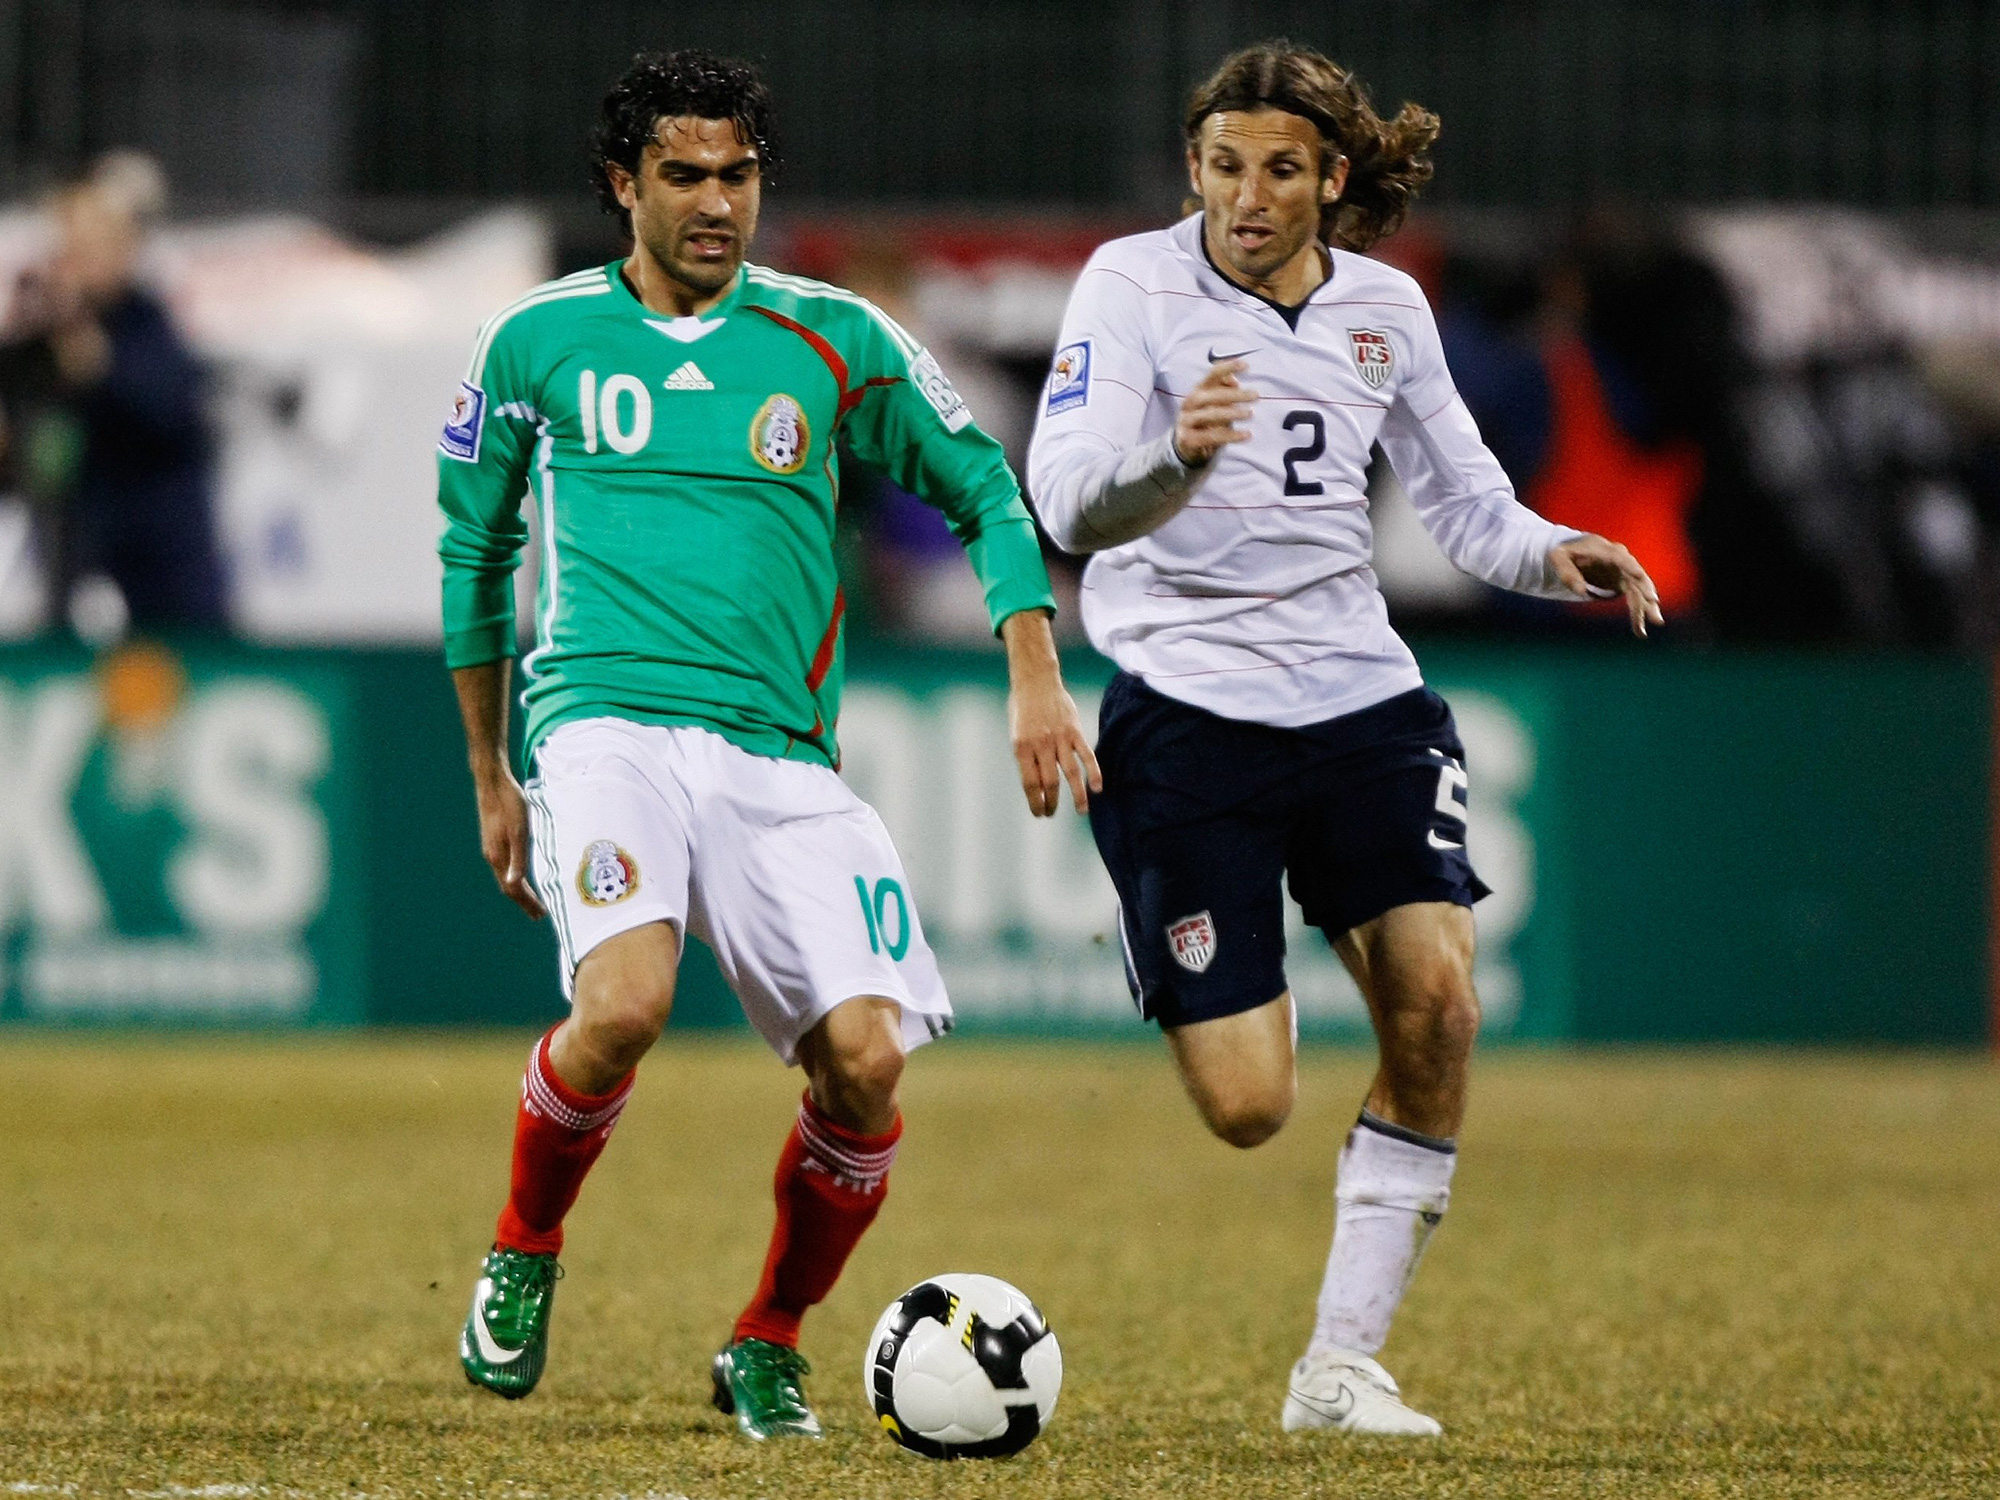 Frankie Hejduk playing for the USA vs Mexico in 2009